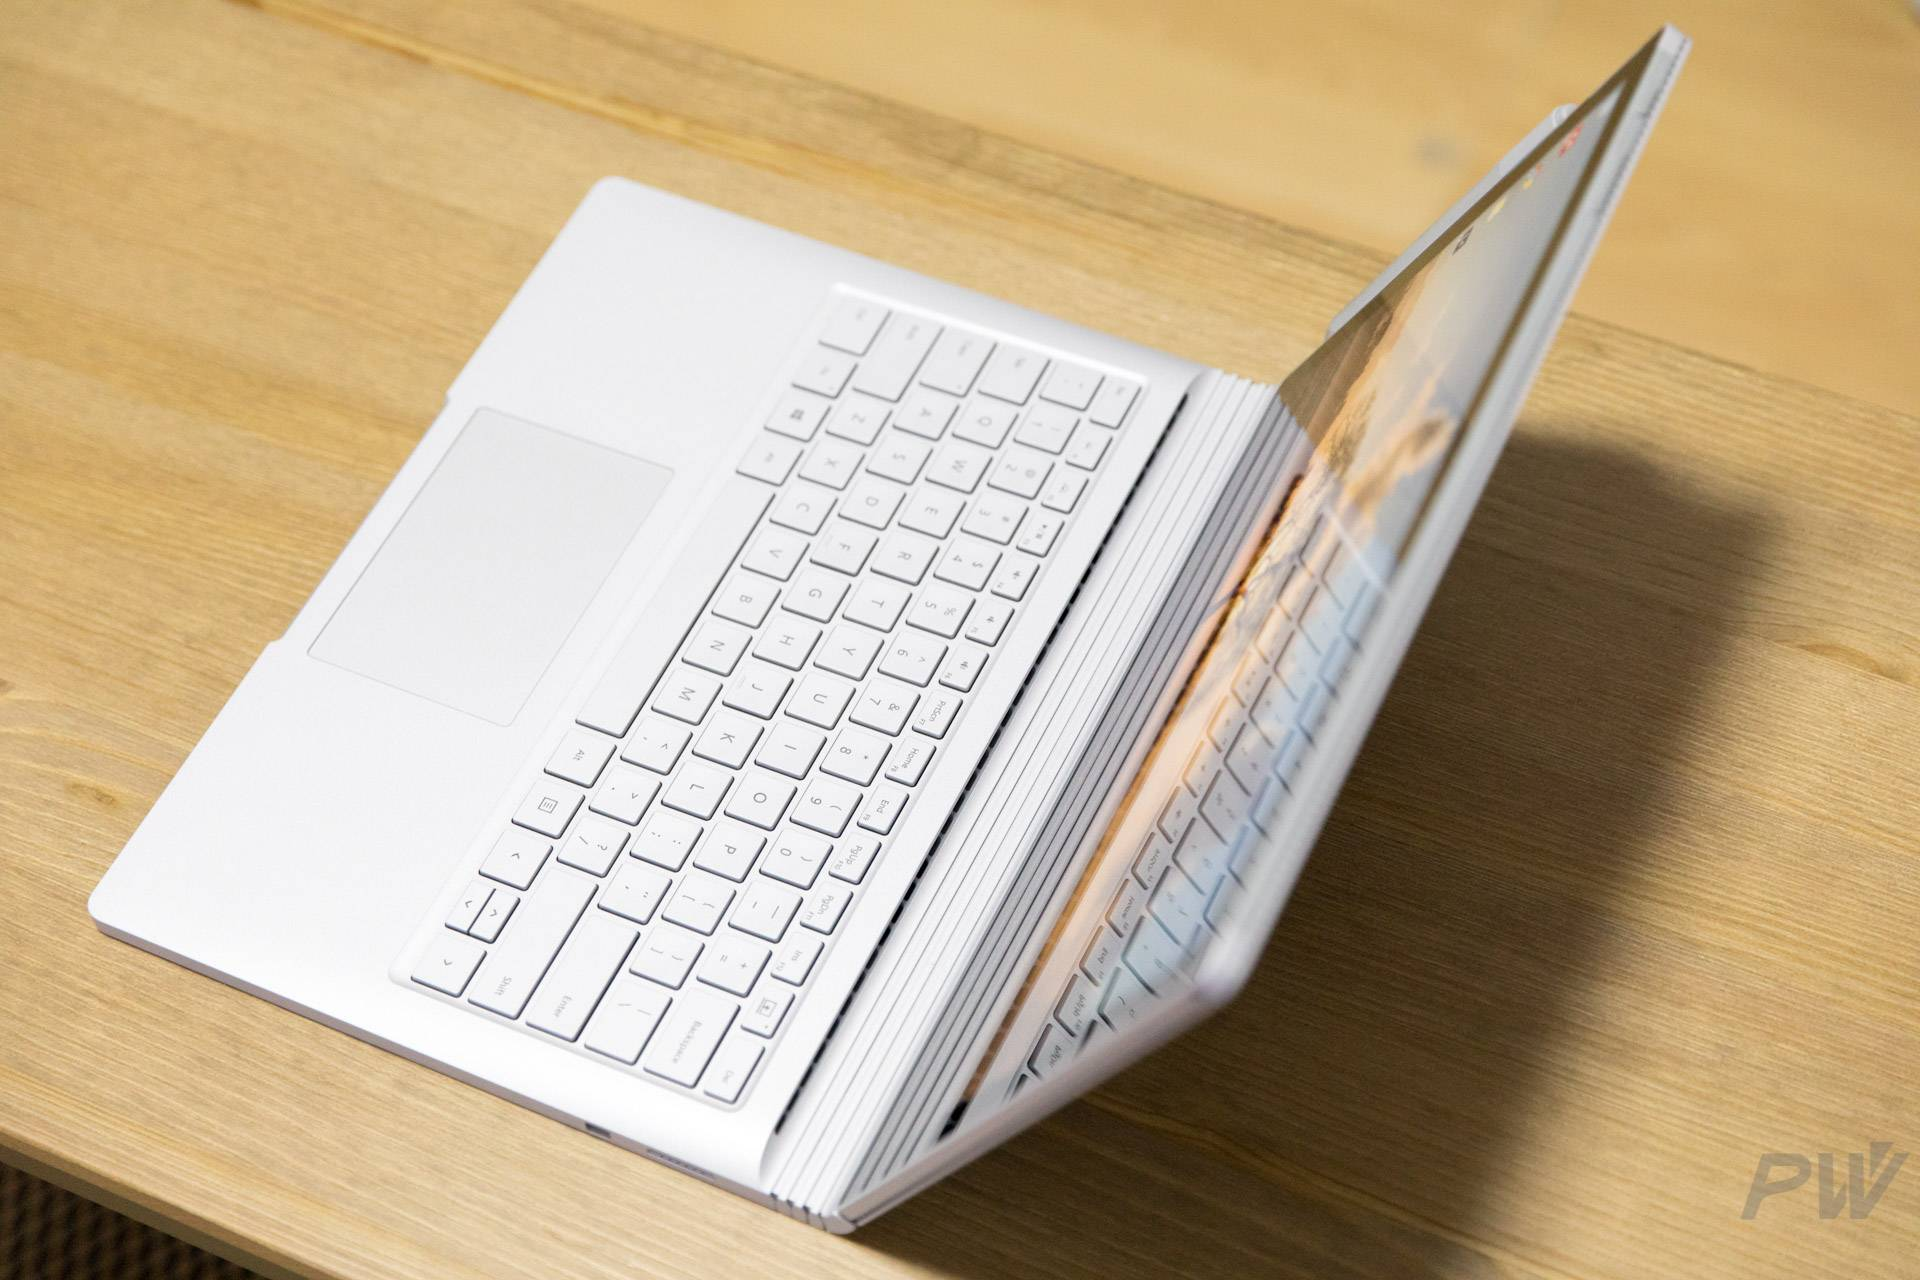 Microsoft Surface Book 2017 Photo by Hao Ying-6